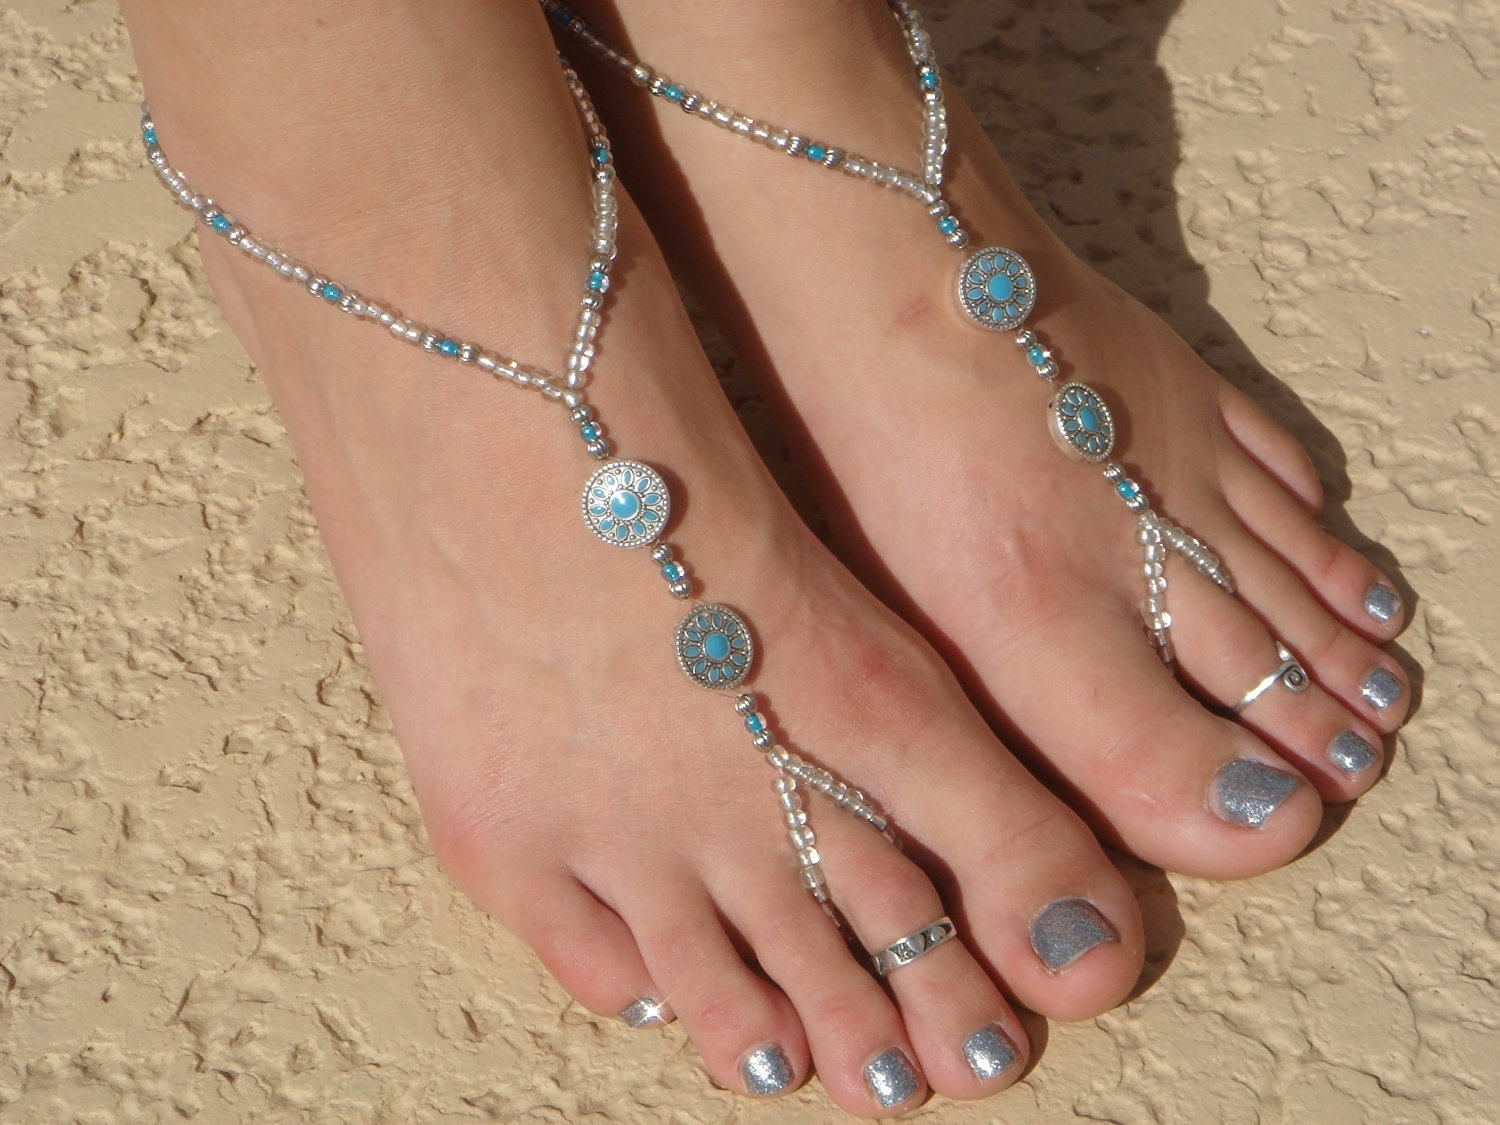 Silver And Turquoise Cross Barefoot Sandals, Slave Anklet, Foot For Most Recently Released Ankle Bracelet Toe Rings (View 13 of 25)